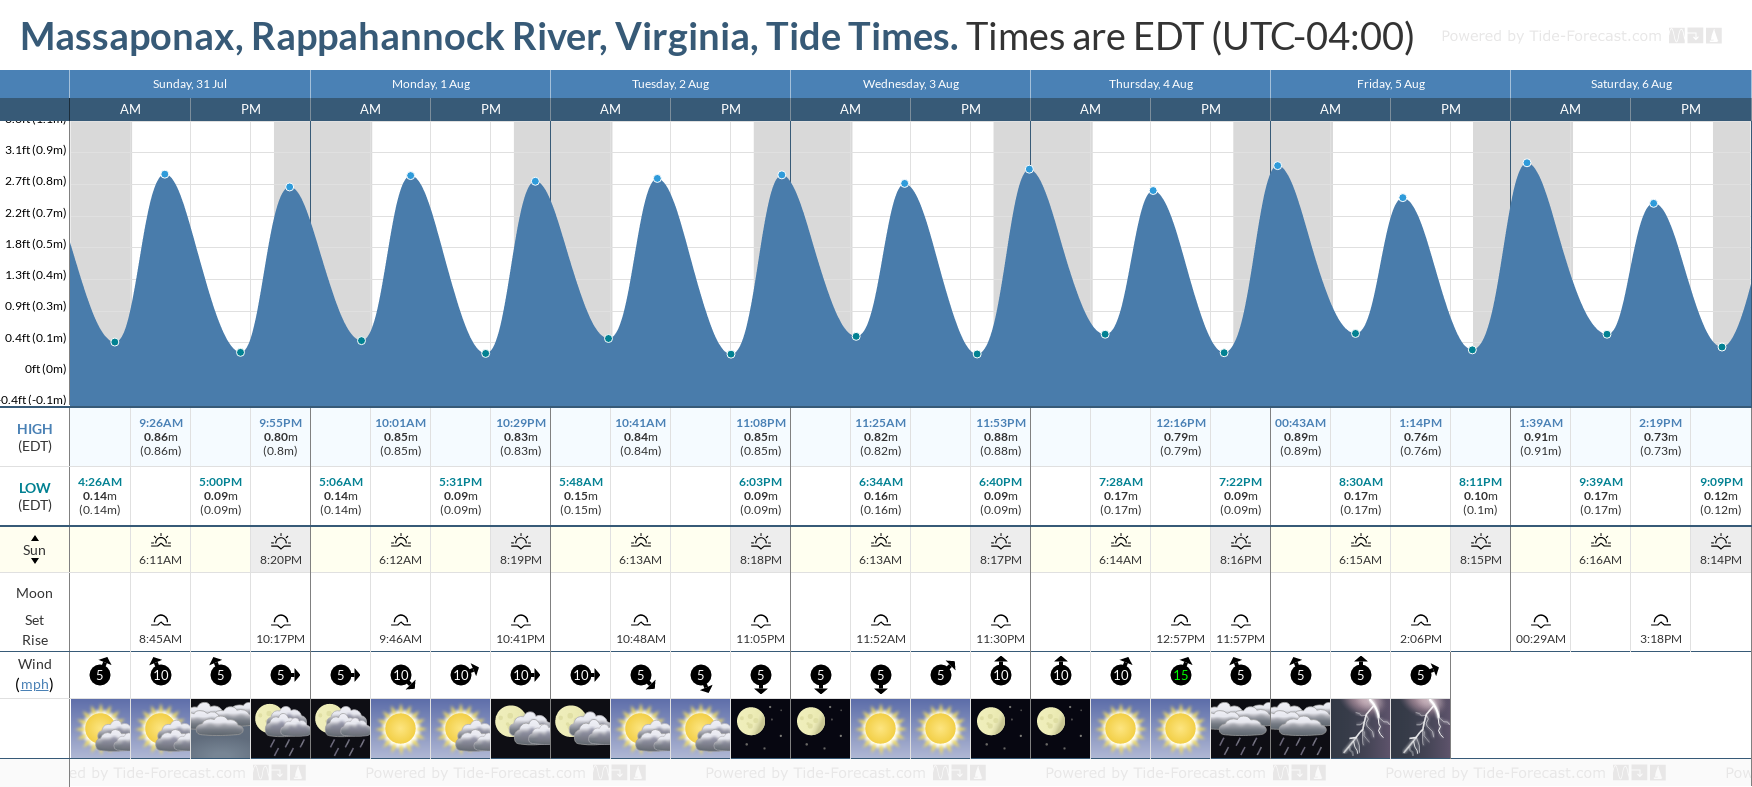 Massaponax, Rappahannock River, Virginia Tide Chart including high and low tide tide times for the next 7 days